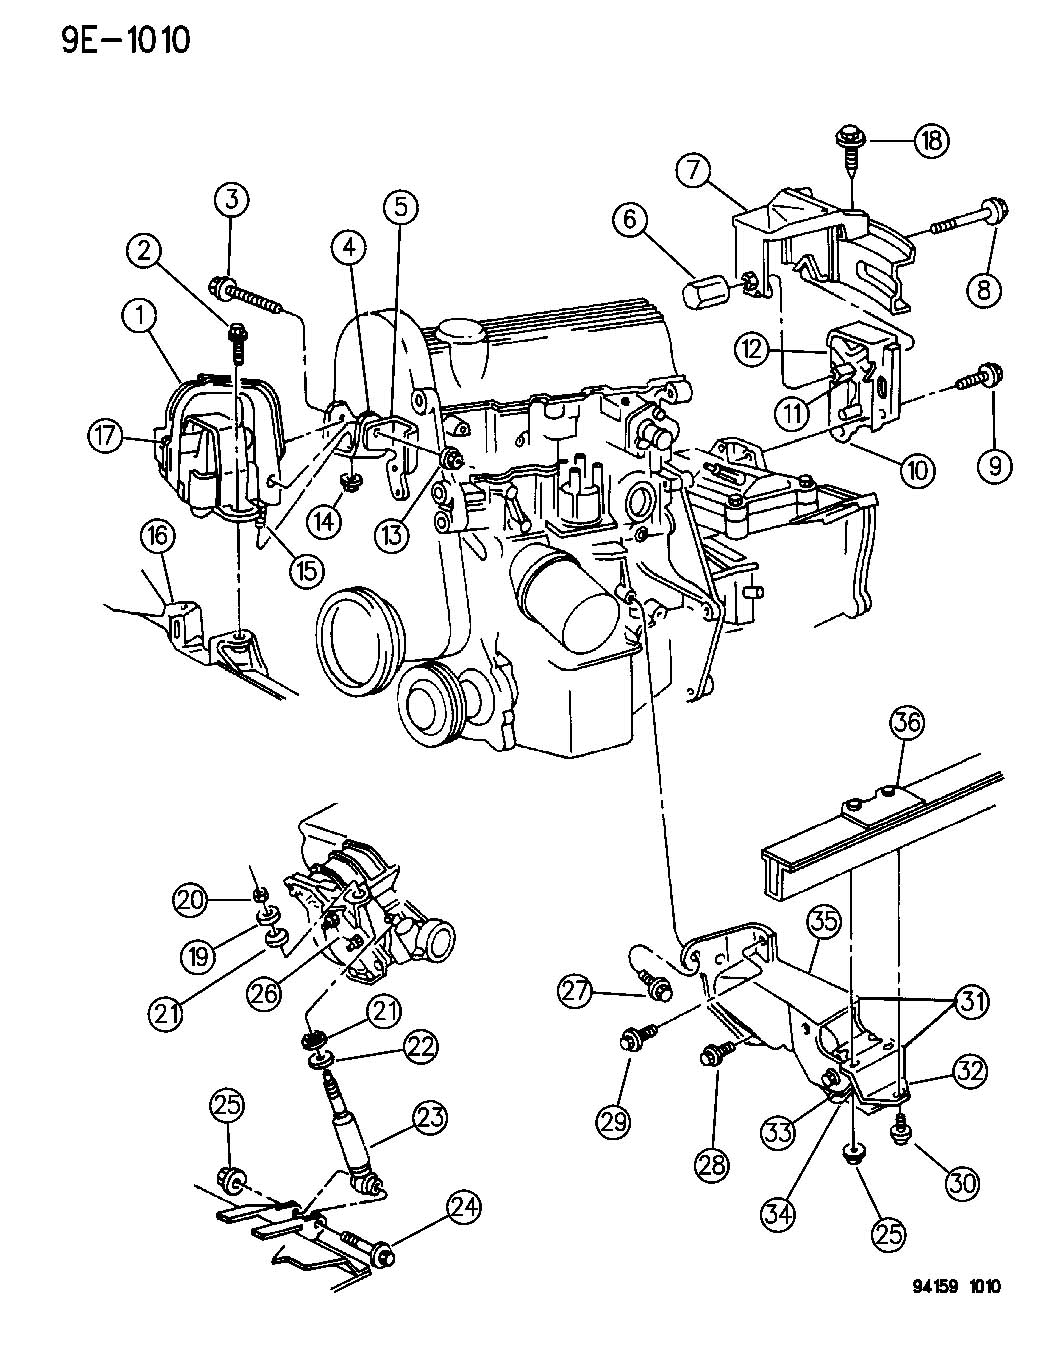 2011 ford f 150 wiring schematic for heated mirrors likewise heated electric seat wiring question likewise